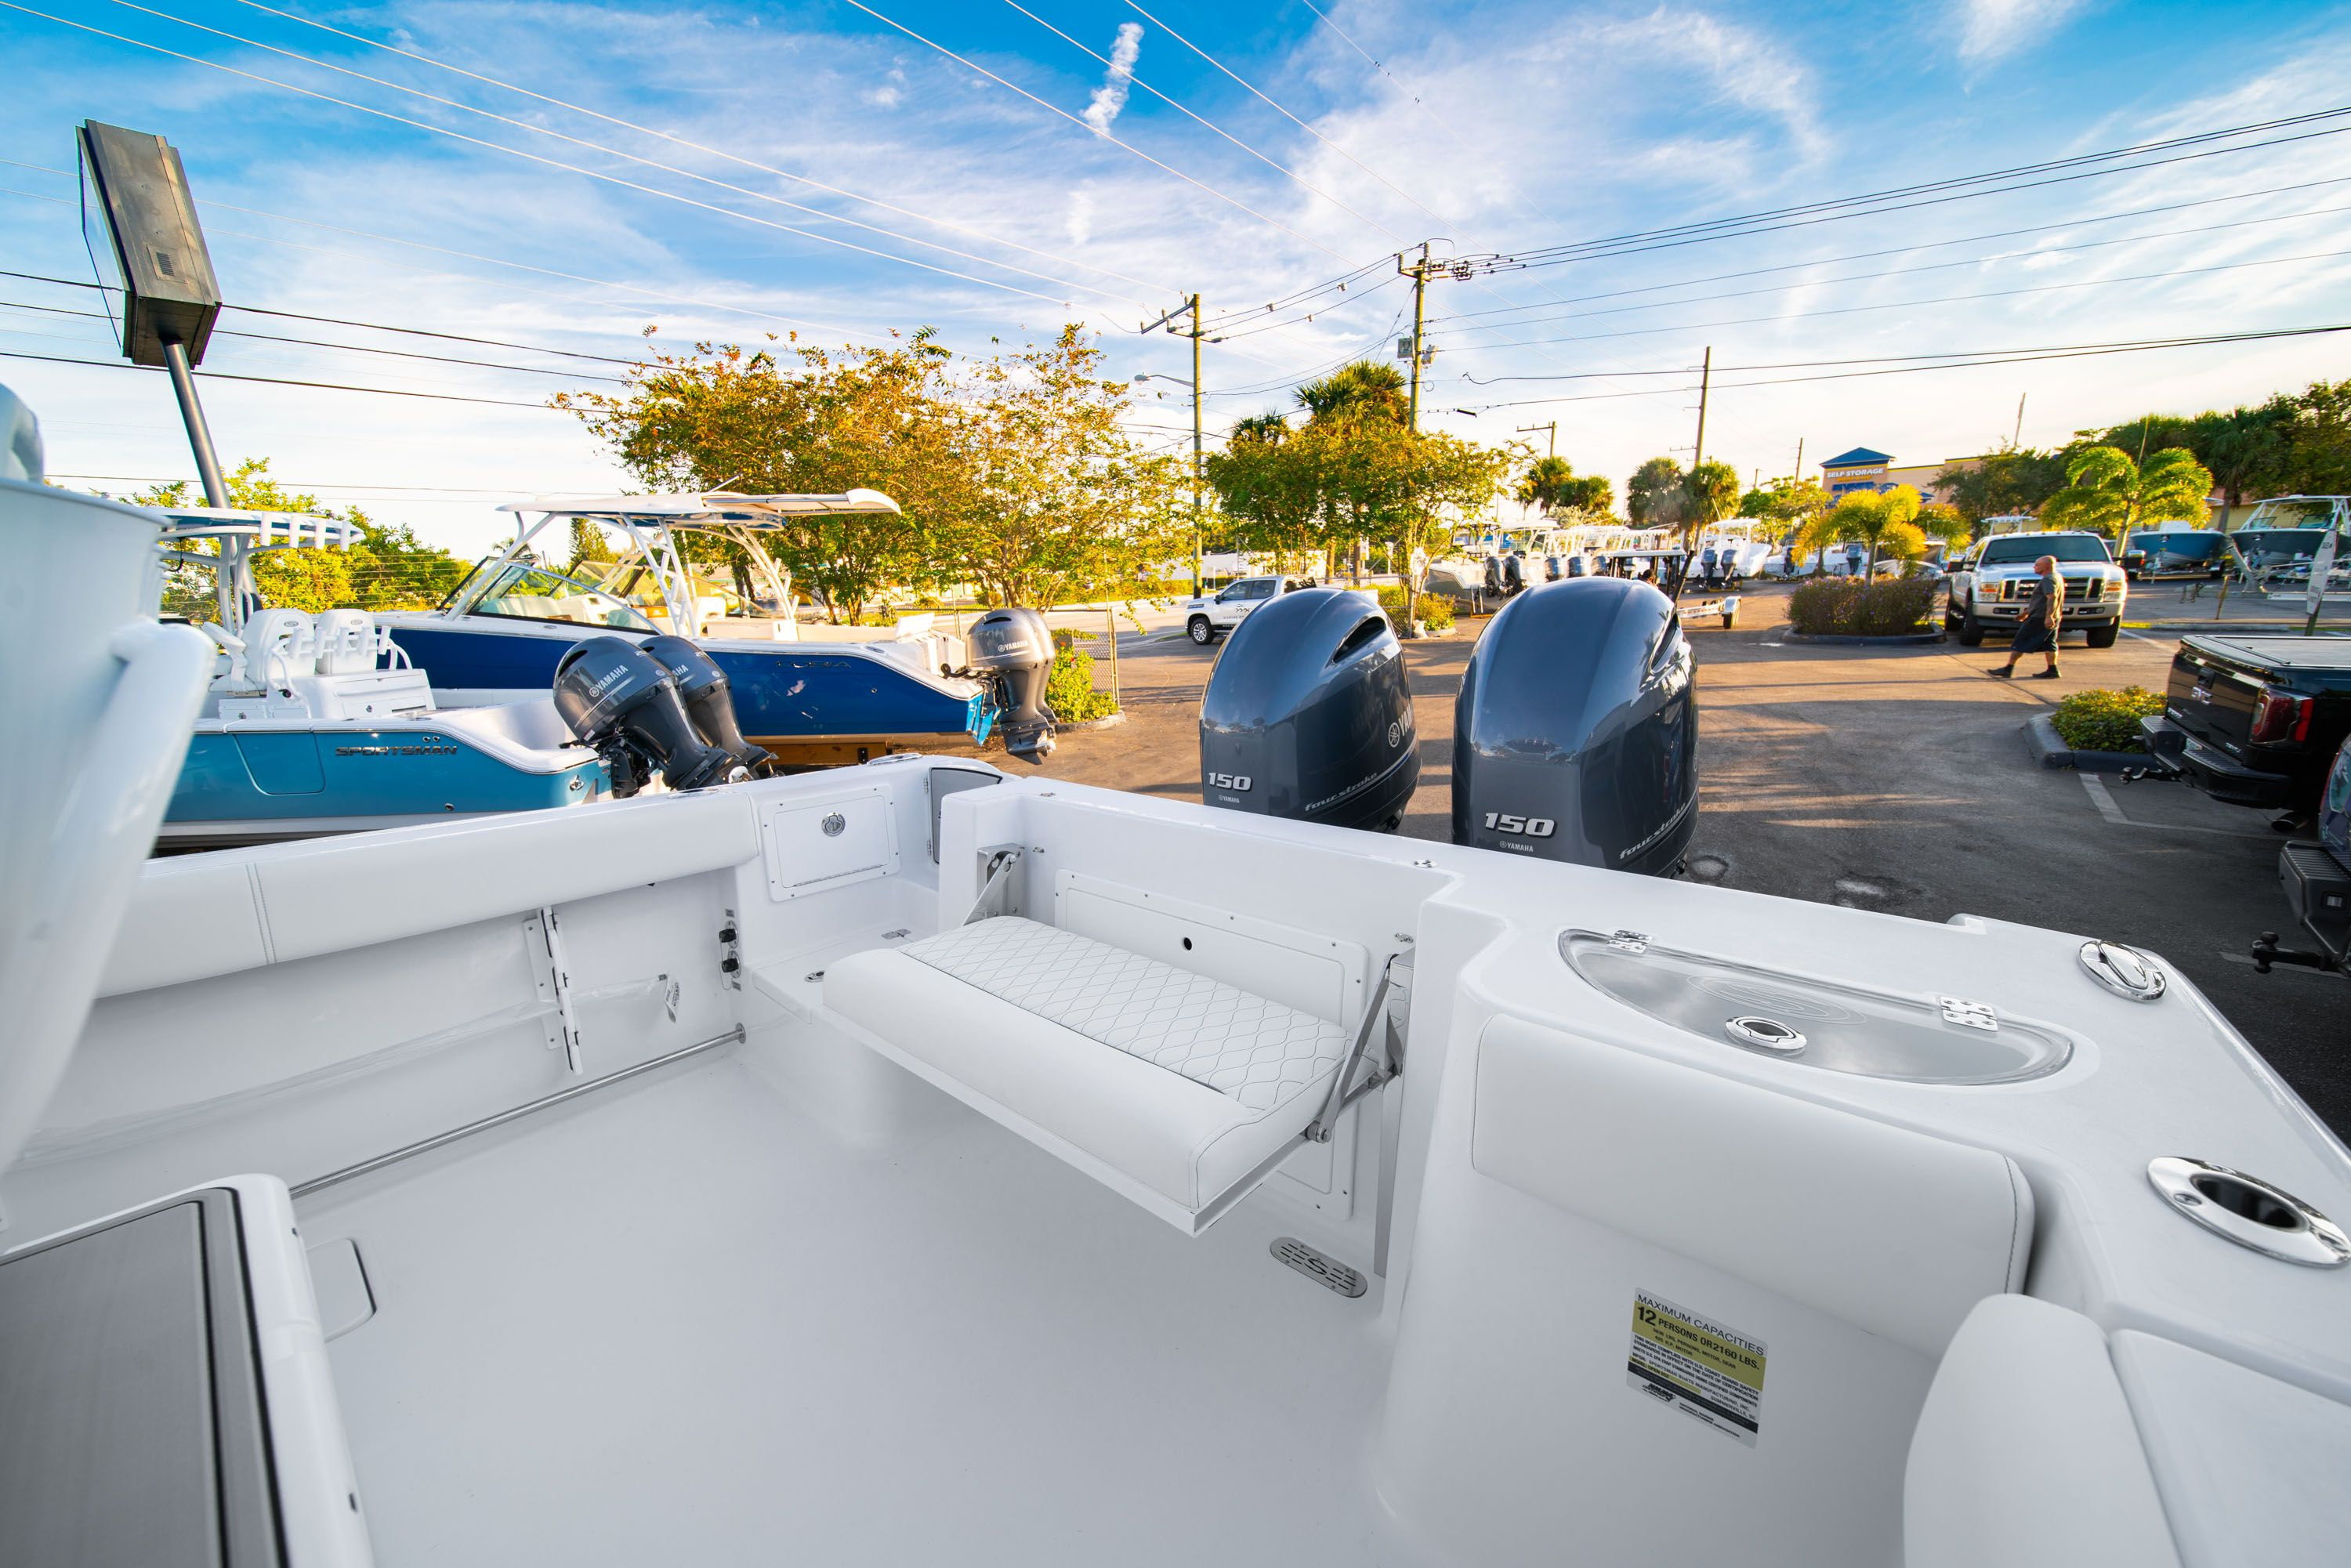 Thumbnail 16 for New 2020 Sportsman Open 252 Center Console boat for sale in West Palm Beach, FL